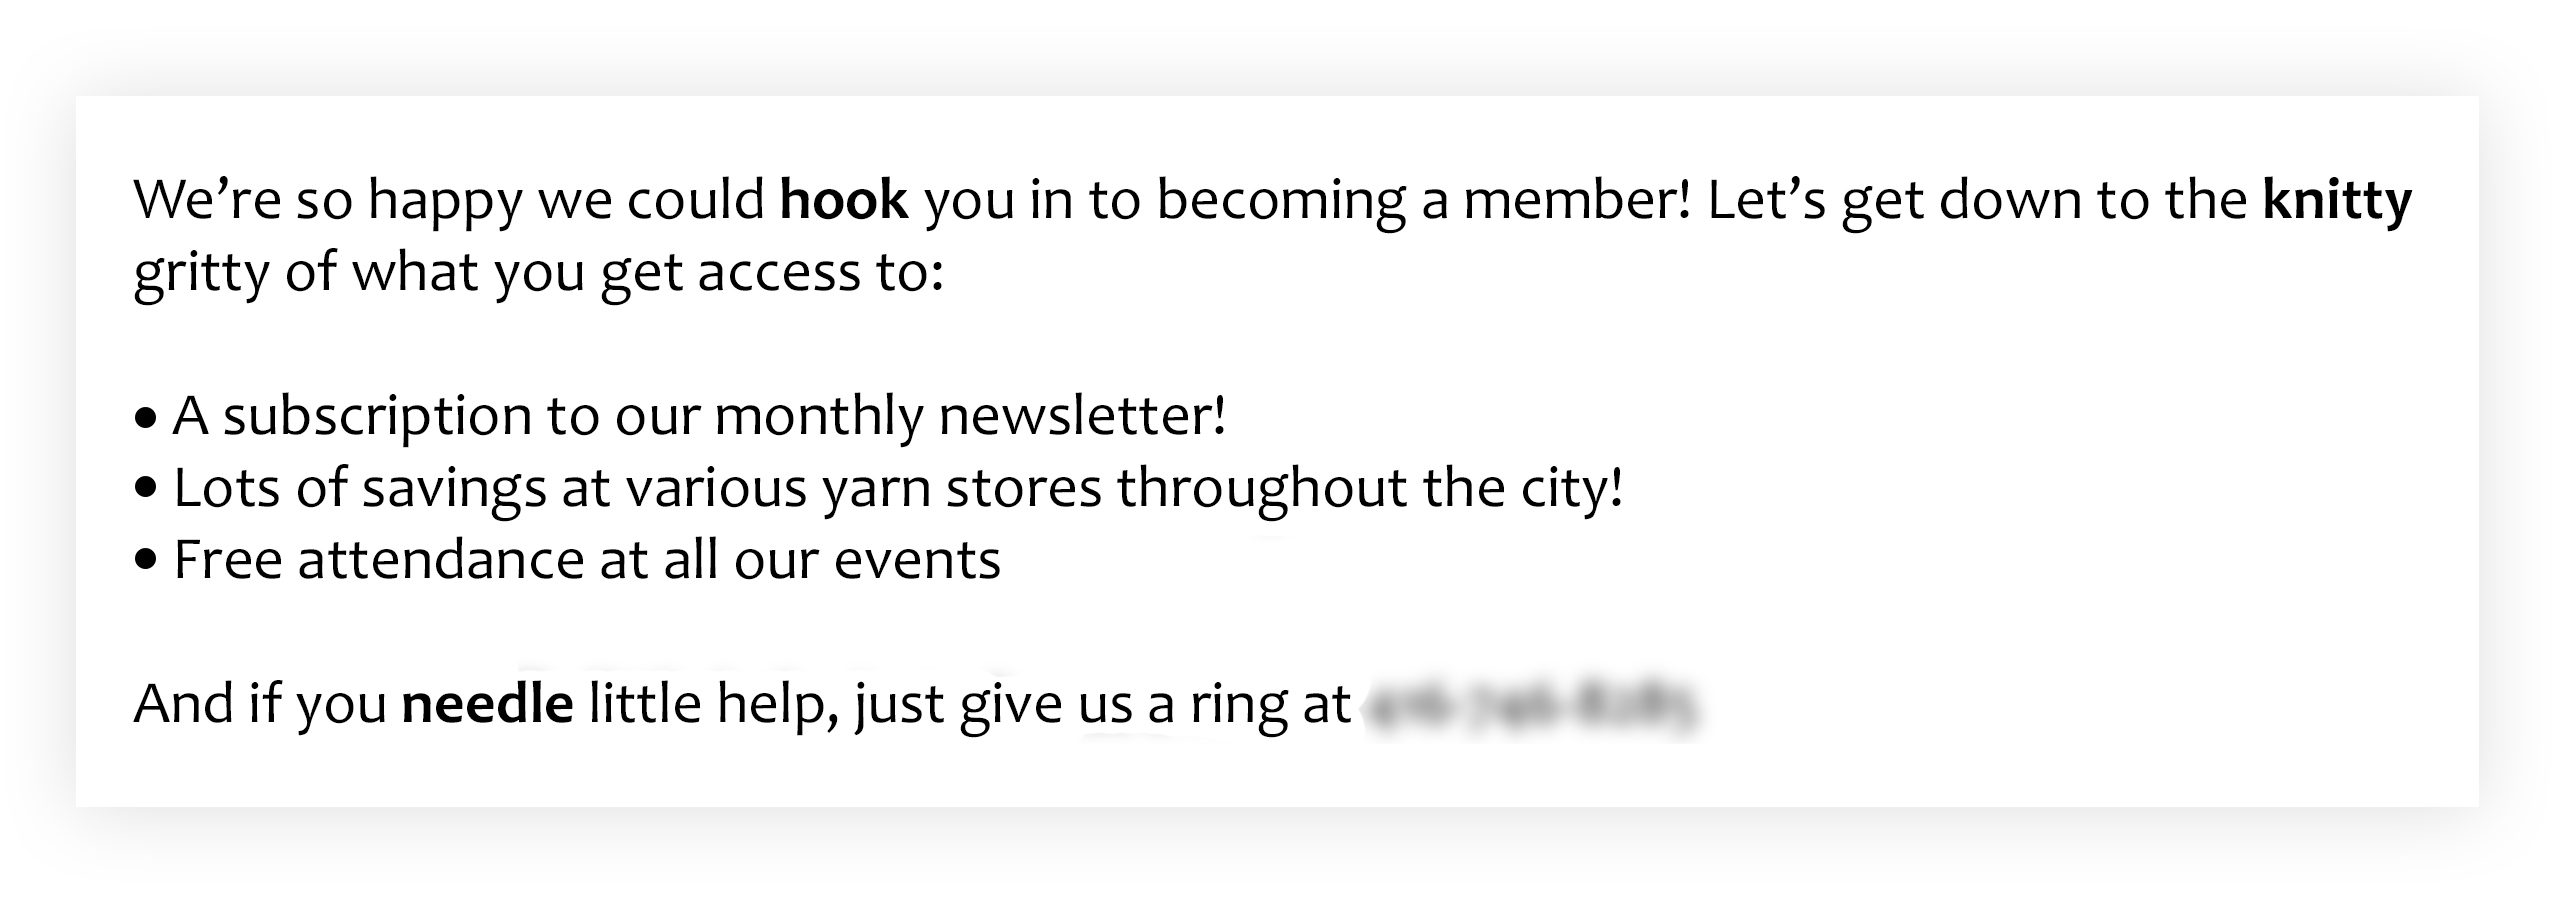 Welcome New Members Right With These 9 Email Tips Template Wild